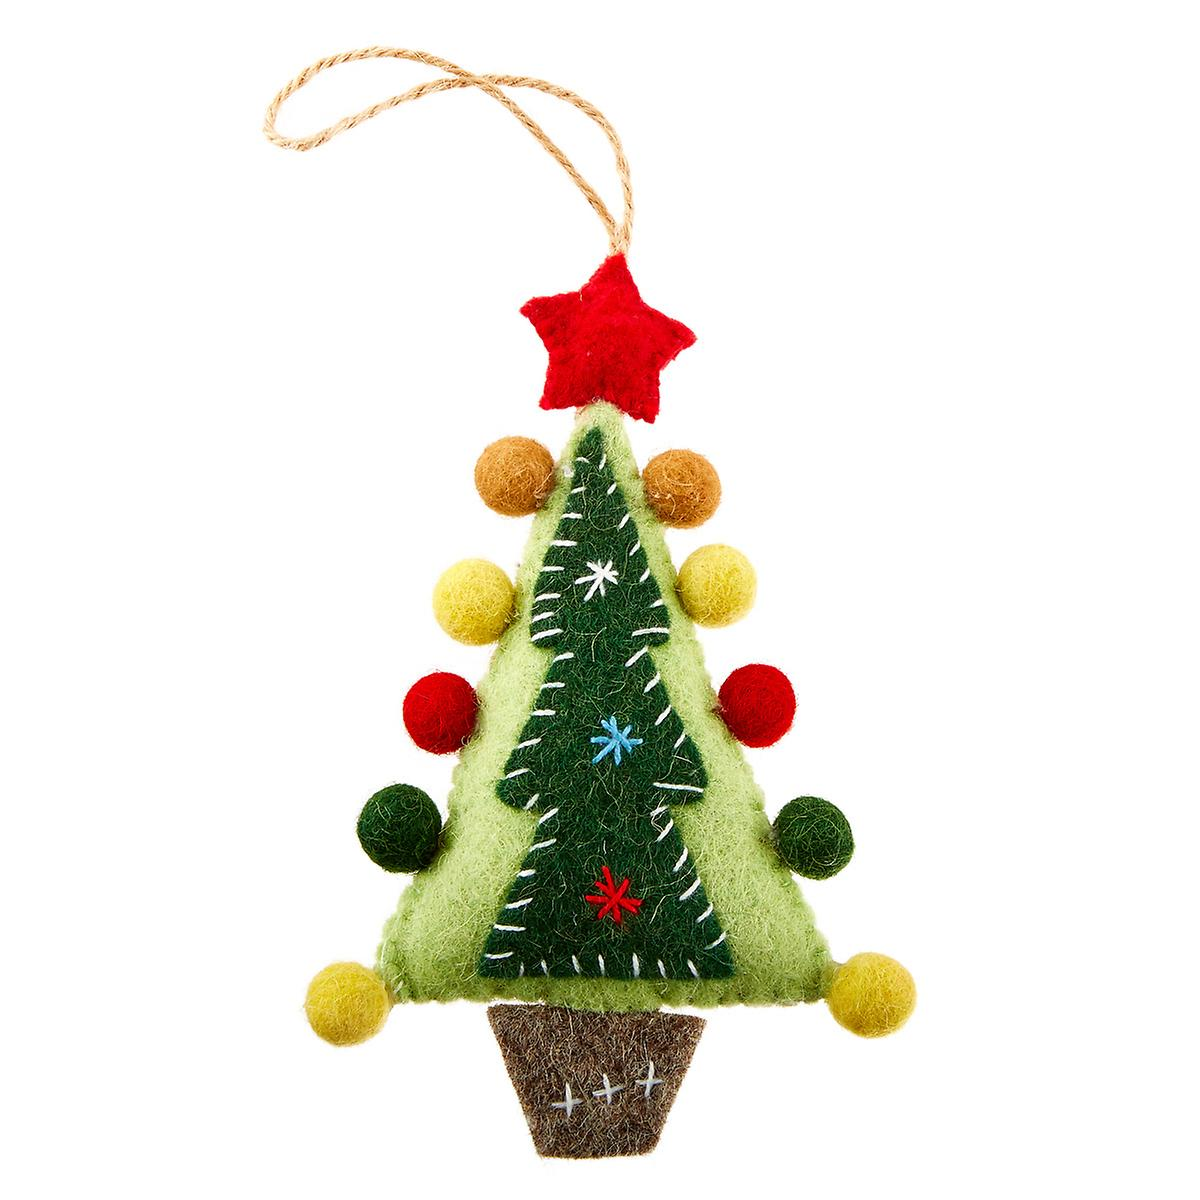 Felt Tree with Red Star Tie-On Ornament